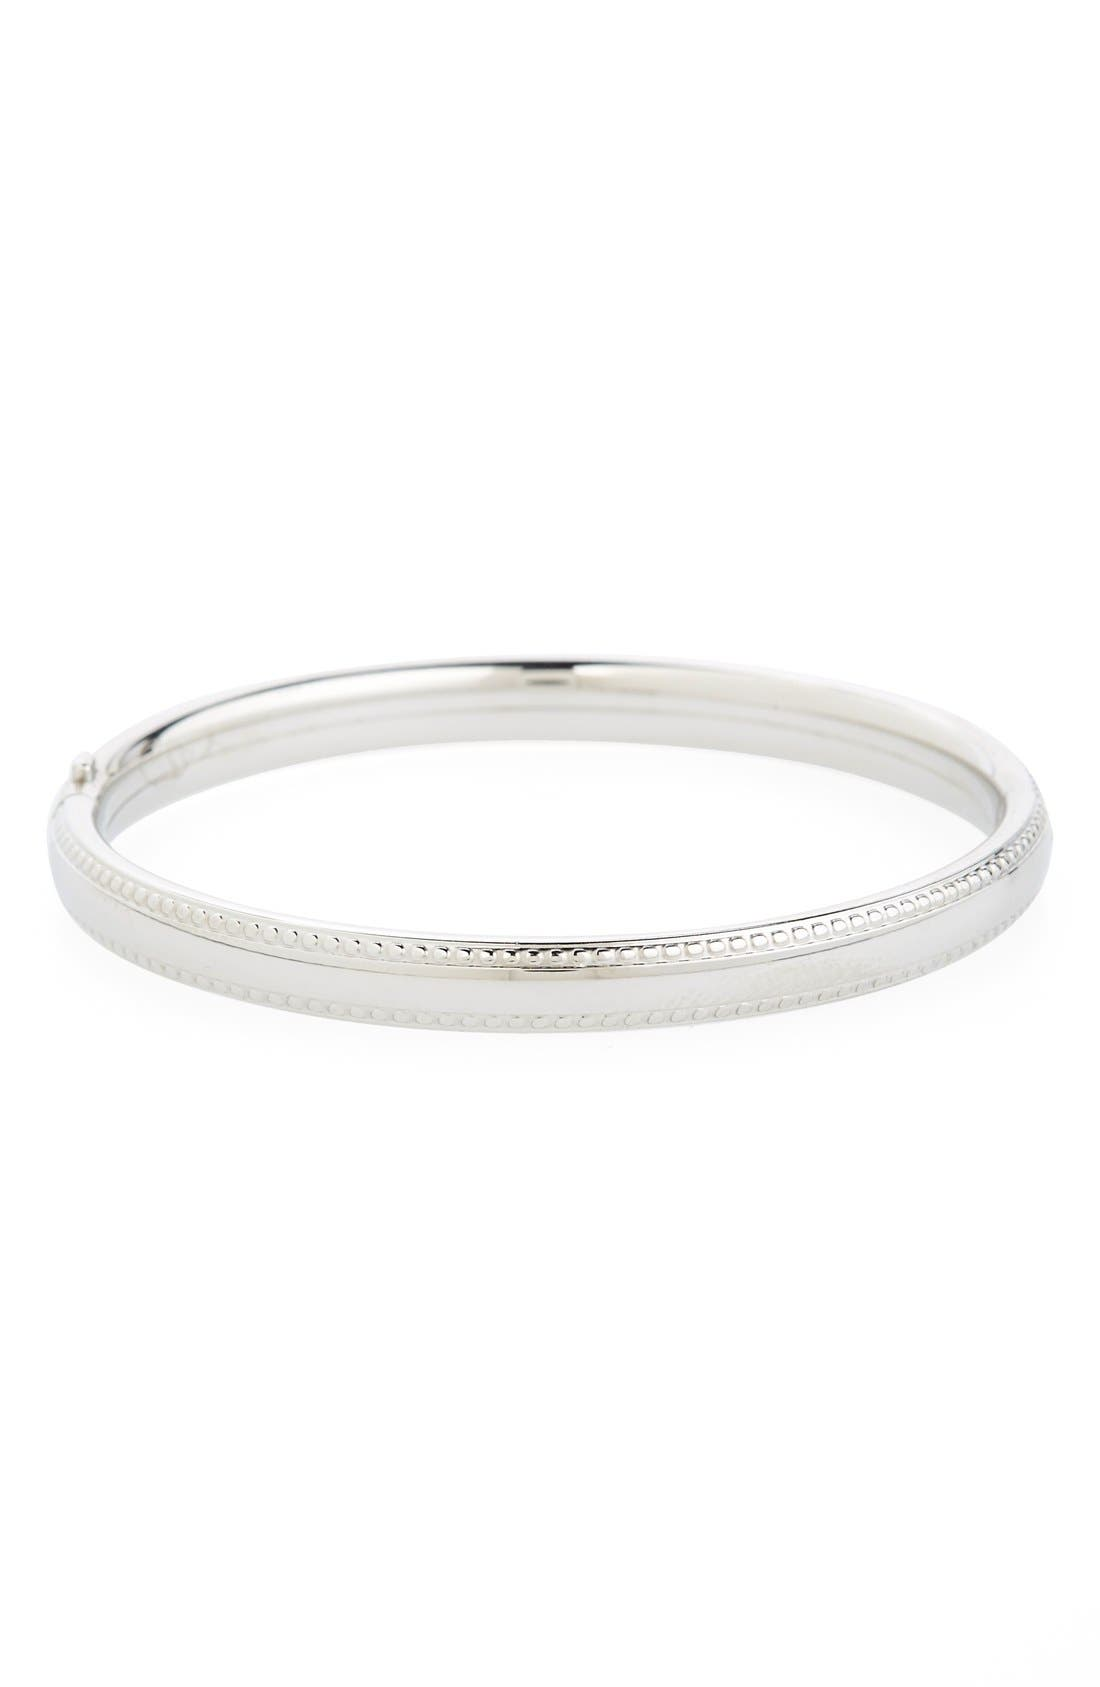 Bead Edge Silver Bangle,                             Main thumbnail 1, color,                             SILVER